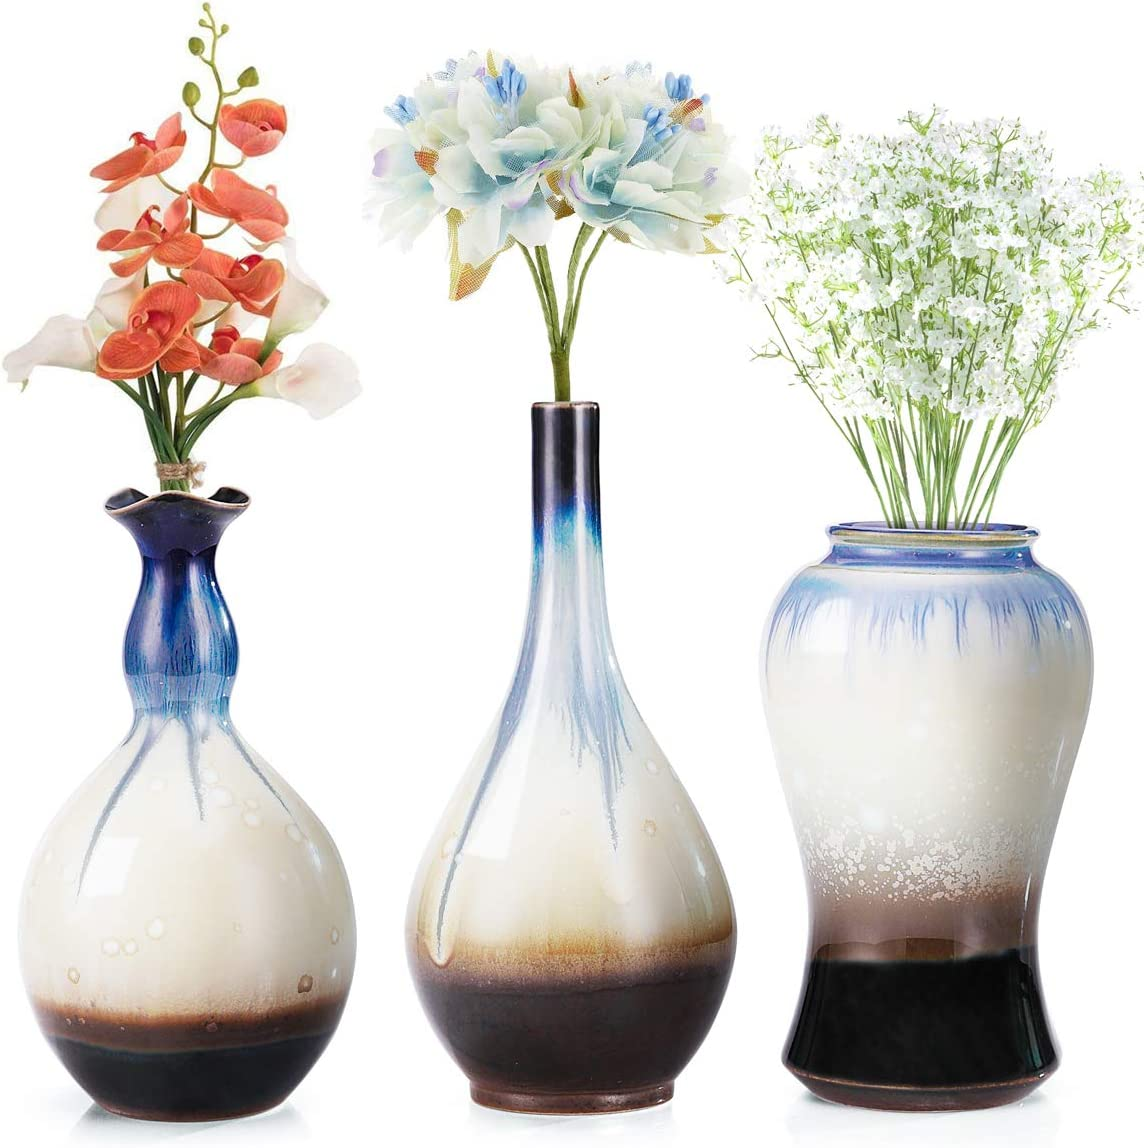 LH Ceramic Flower Vases Set of 3, Unique Glazed Design,Decorative Modern Floral Vase for Home Decor Living Room Centerpieces and Events